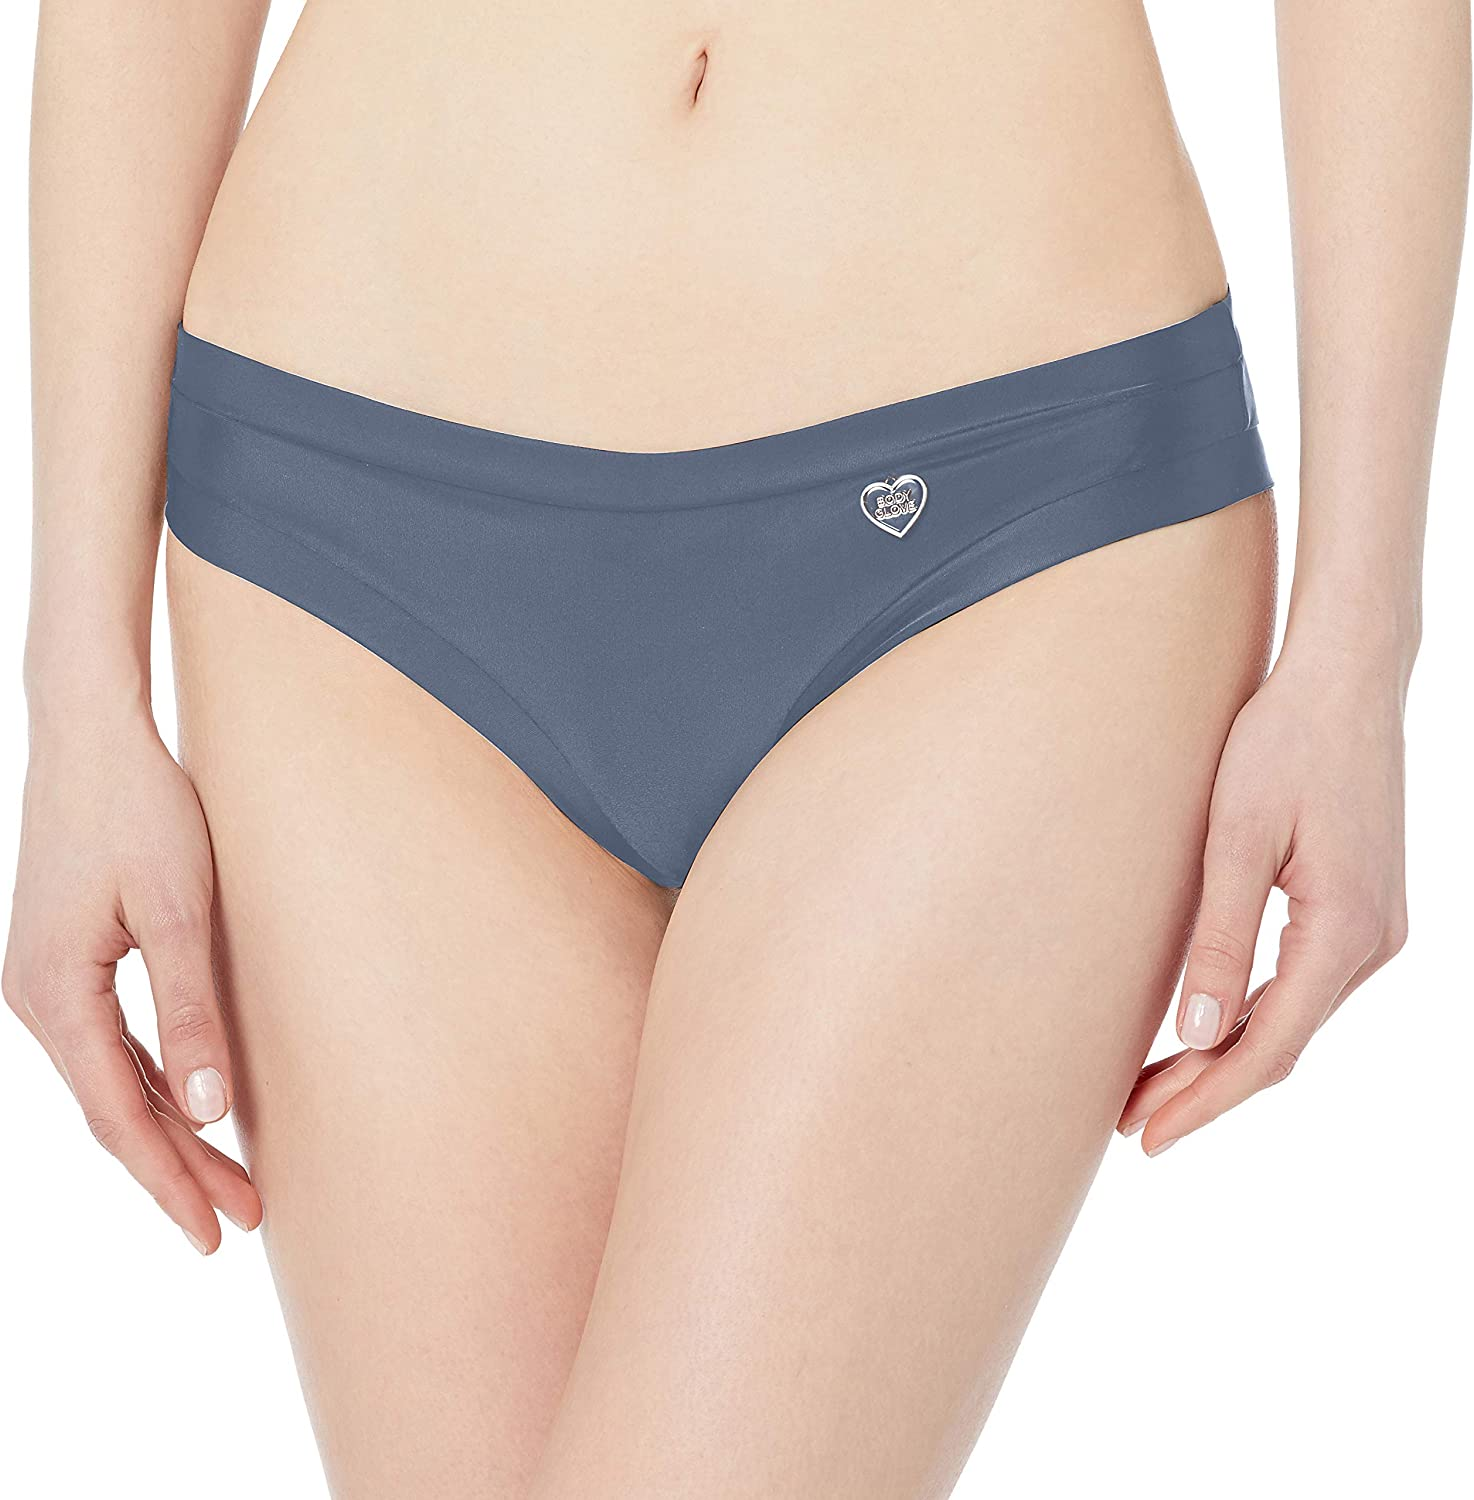 Body Glove Women's Sale special price Free shipping on posting reviews Standard Smoothies Rise Biki Audrey Low Solid